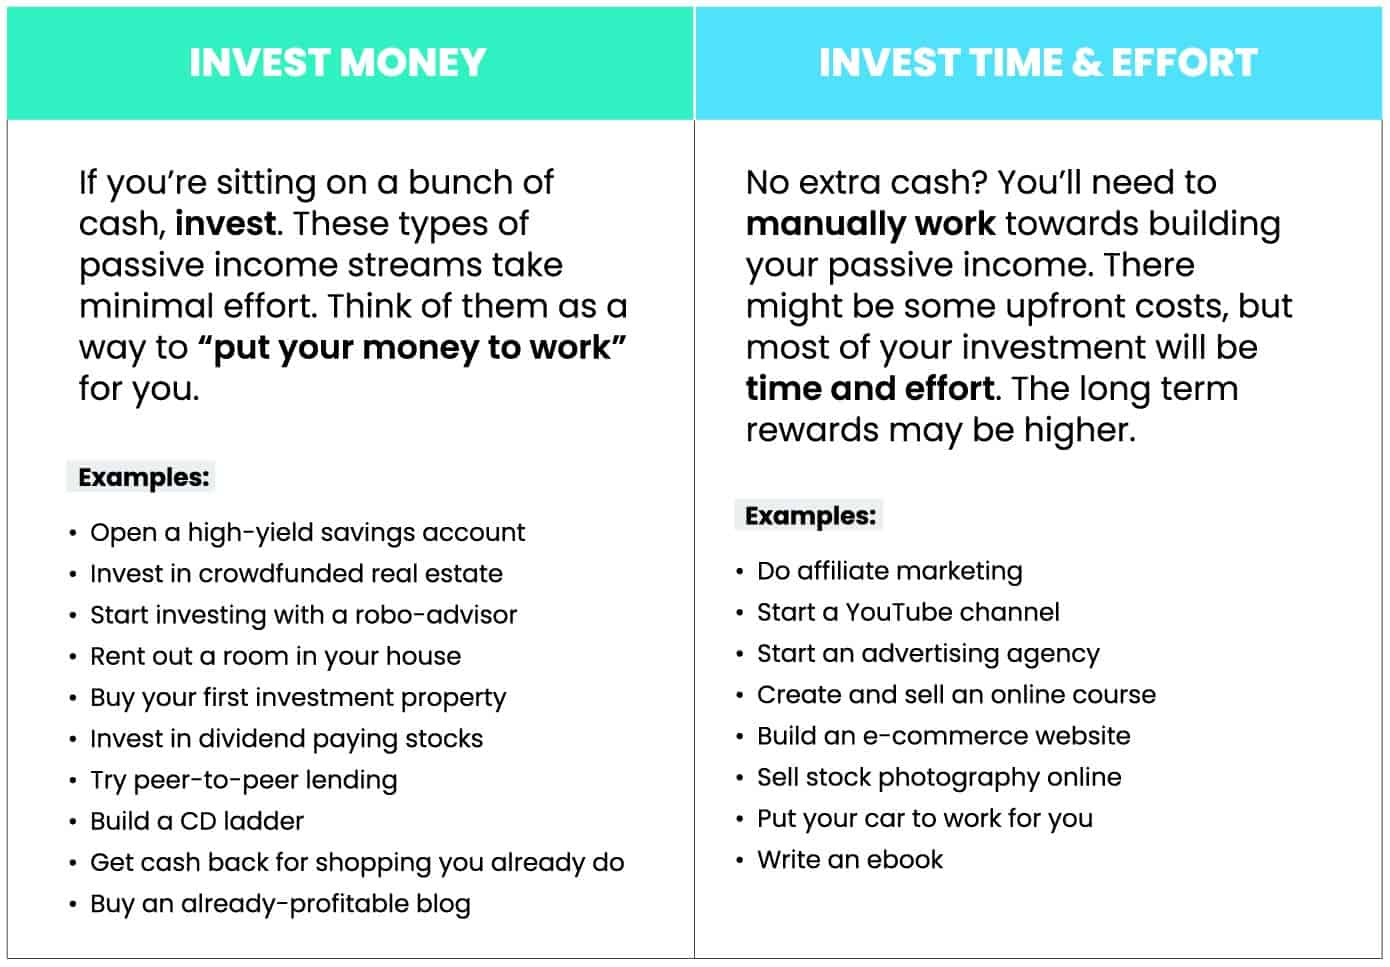 chart comparing different types of passive income that require either investing money or investing time and effort.